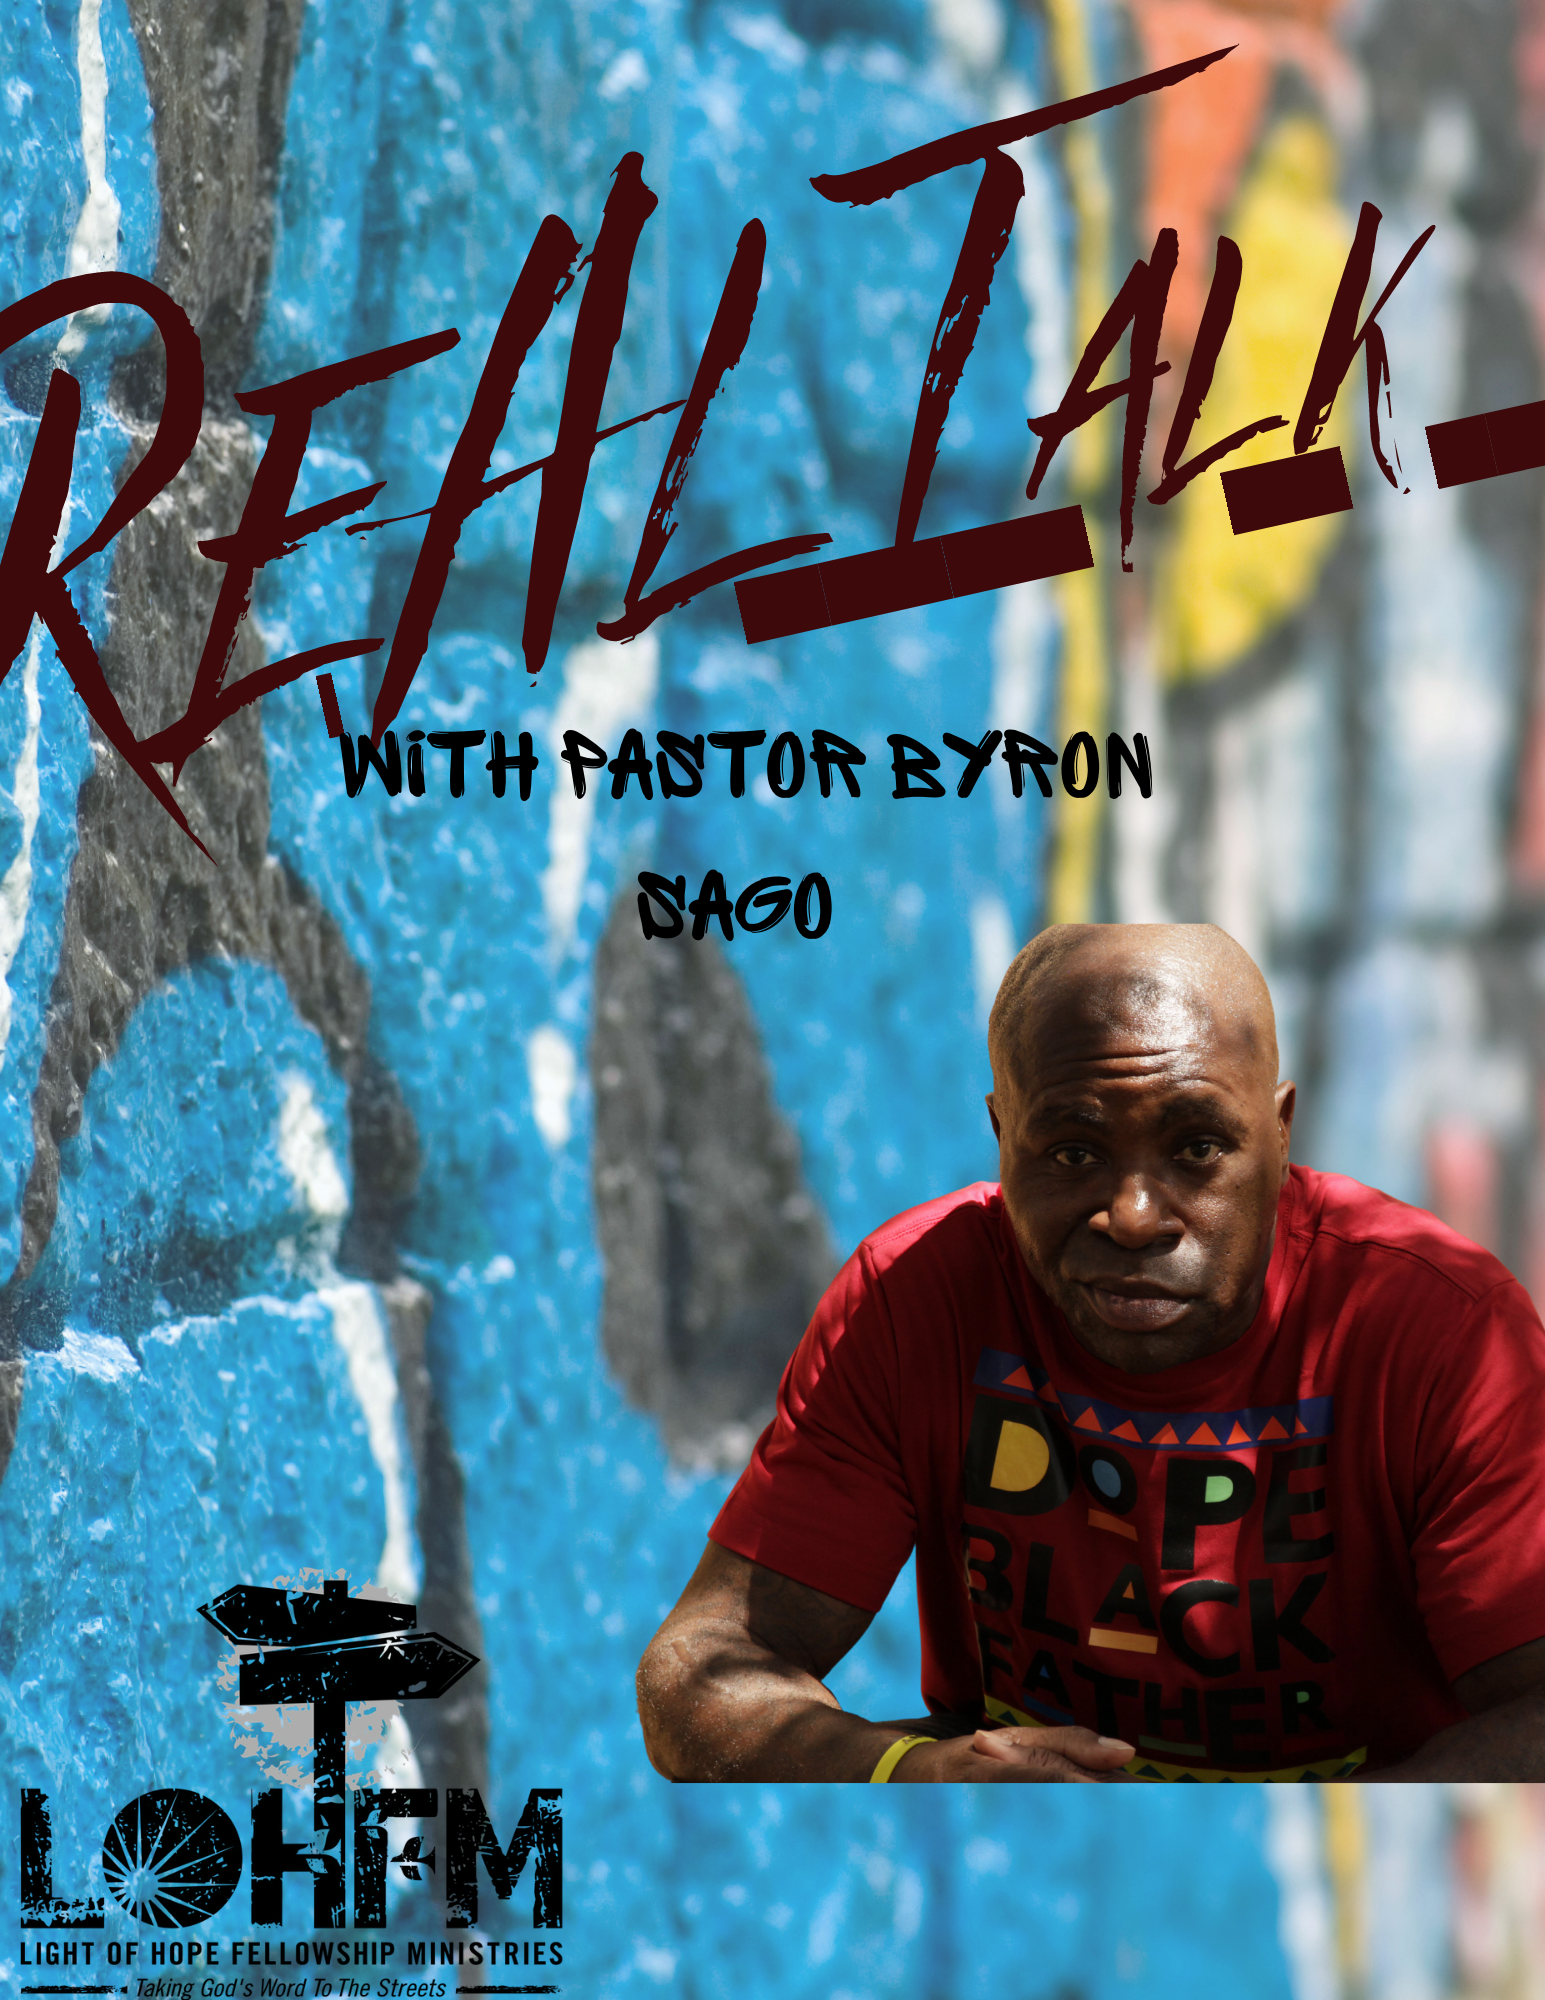 Real Talk with Pastor Byron Sago 4:30pm CST